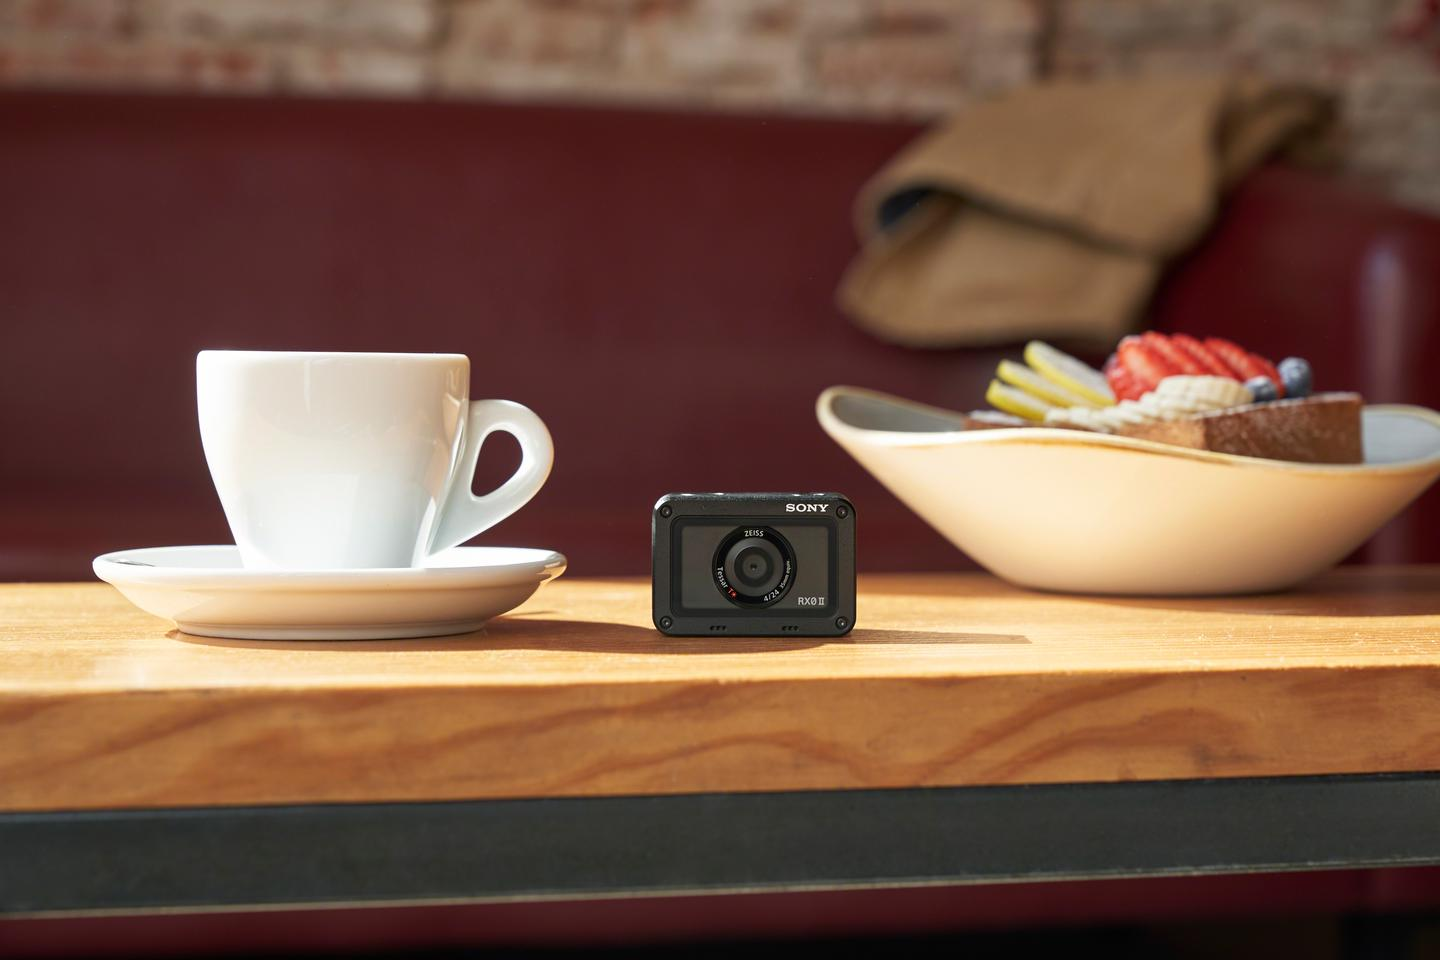 A tiny form factor will make this a very portable device